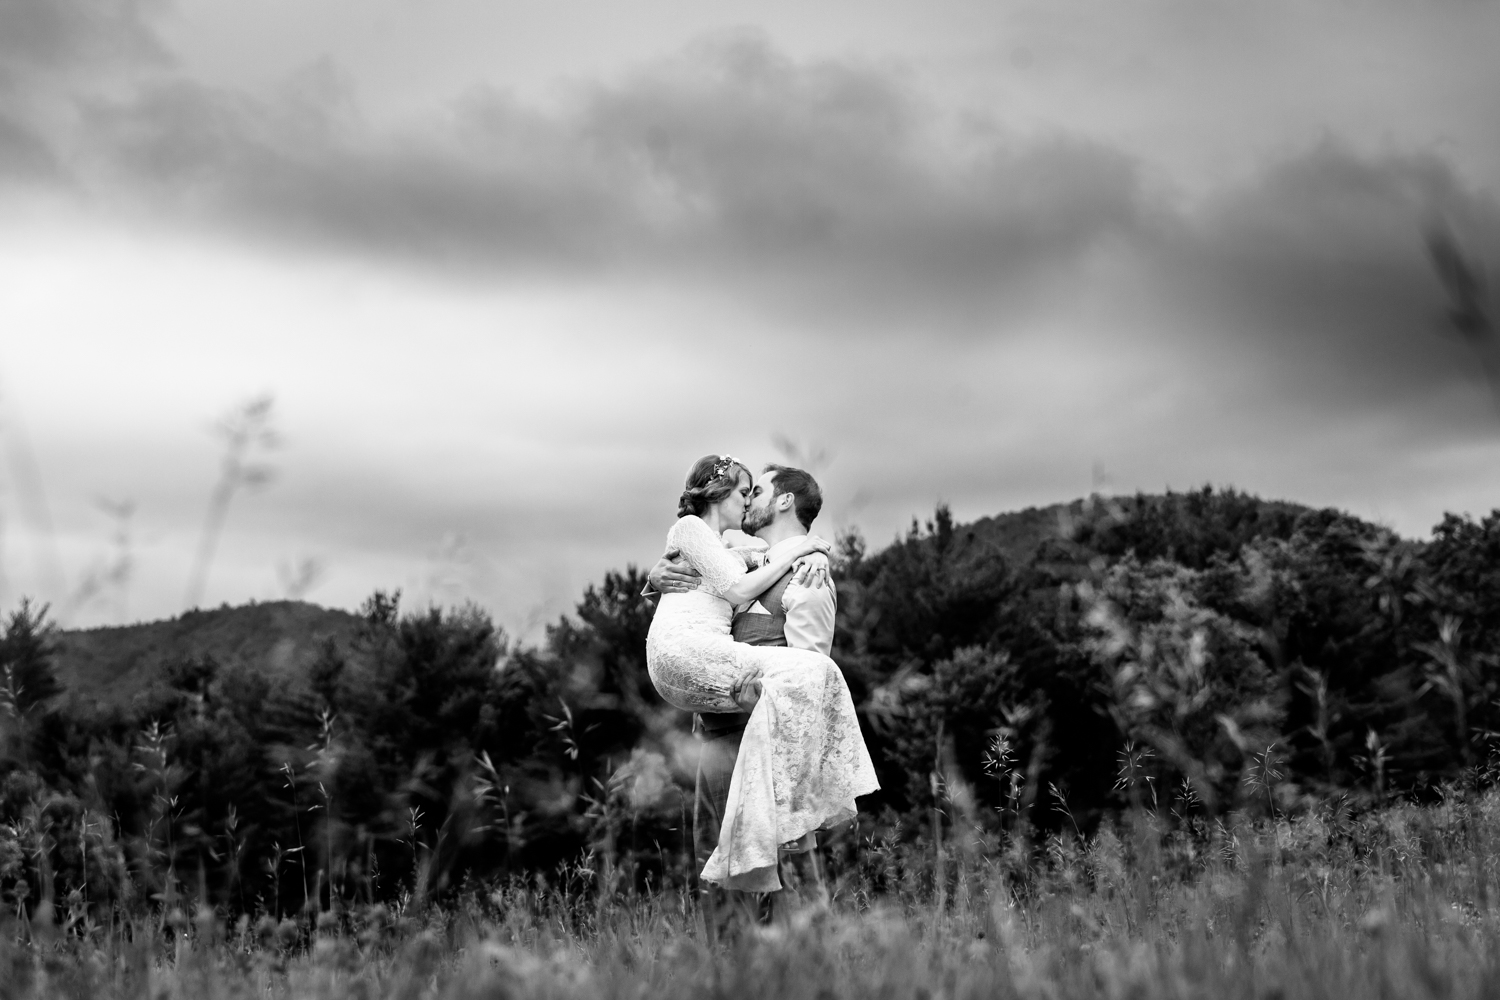 A groom carries a bride in a field